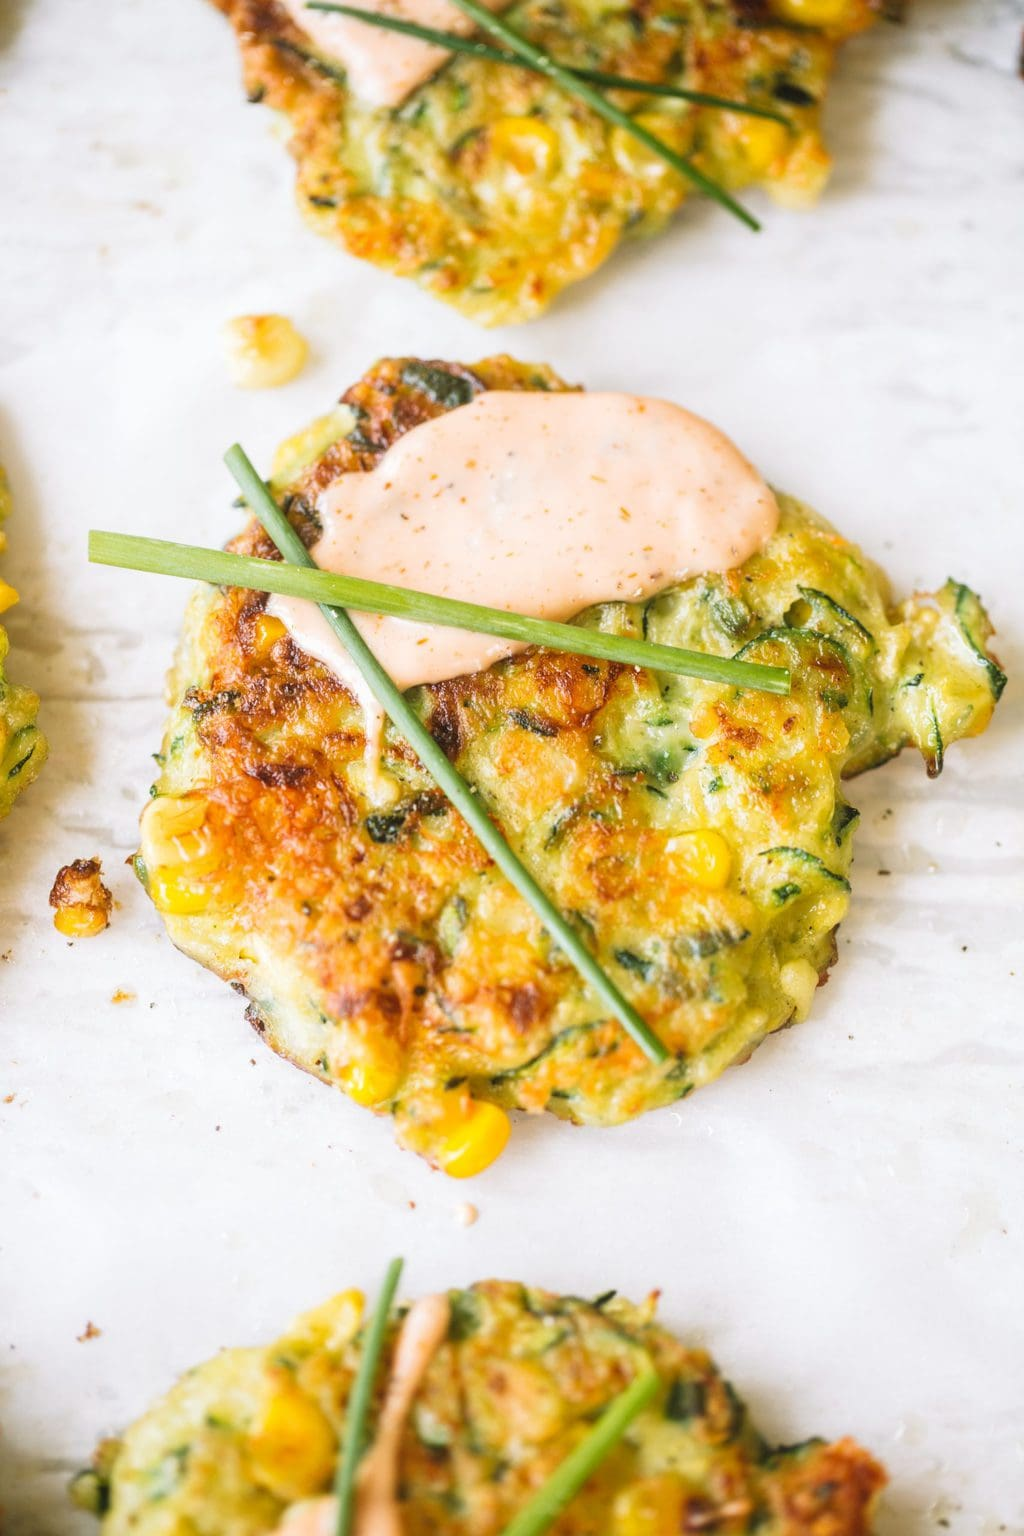 summer zucchini and corn fritters topped with creamy sauce and chives